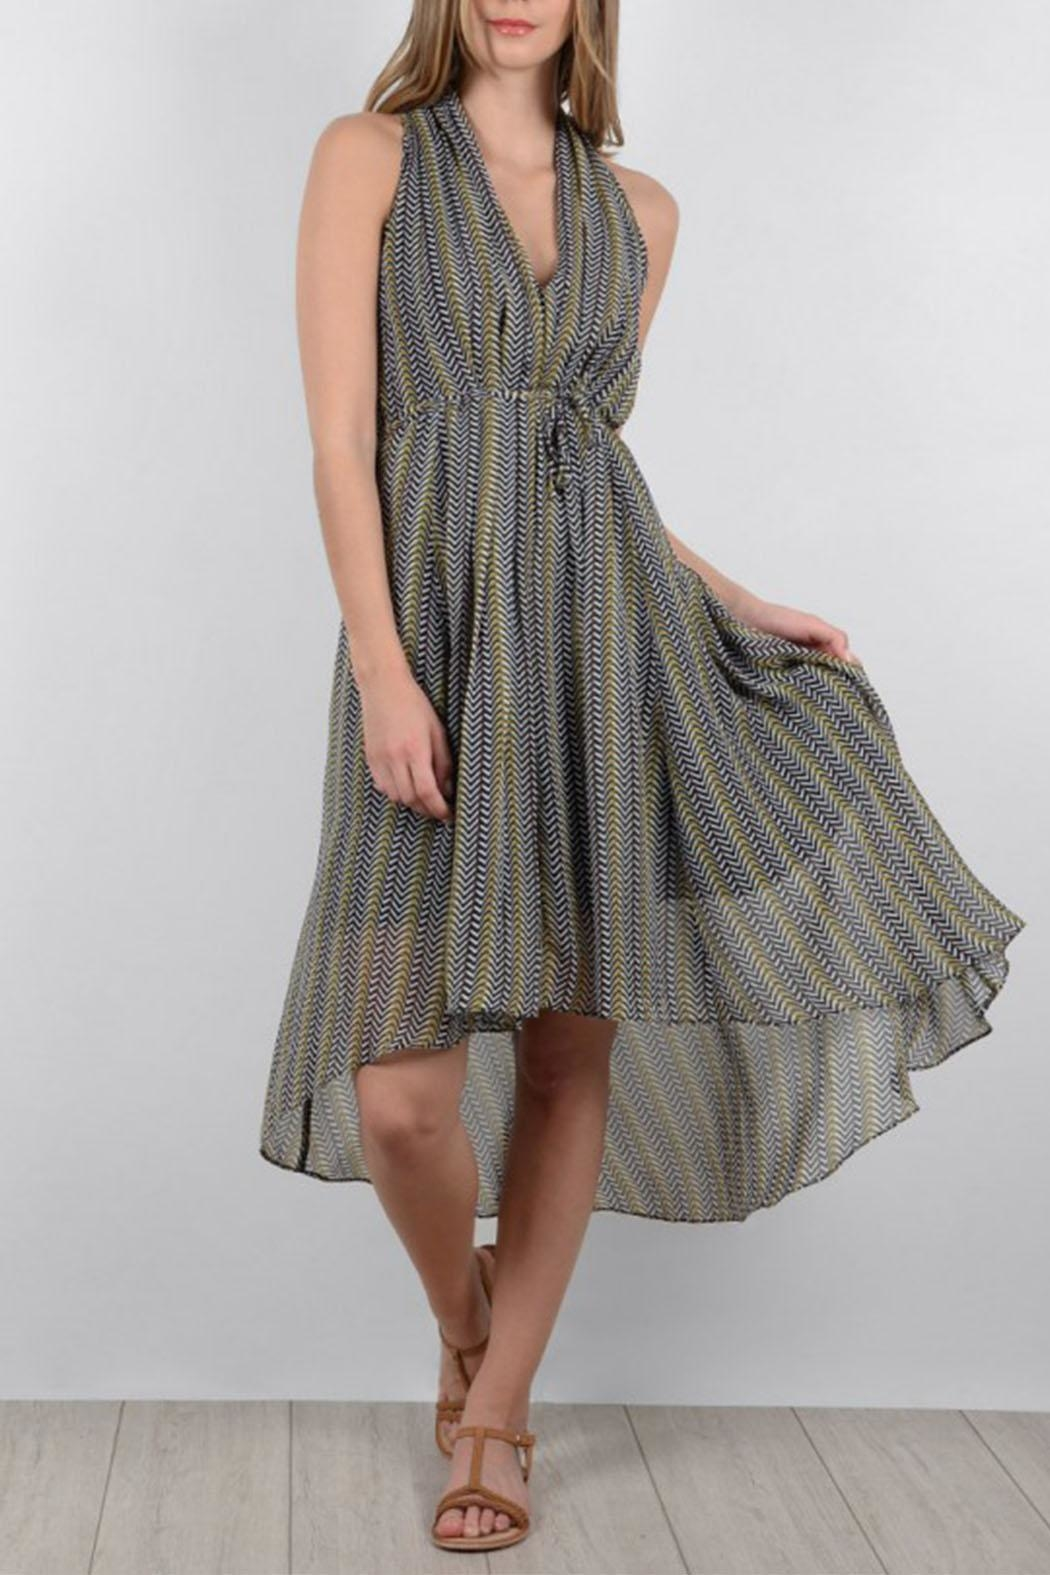 Molly Bracken Finesse Dress - Front Full Image